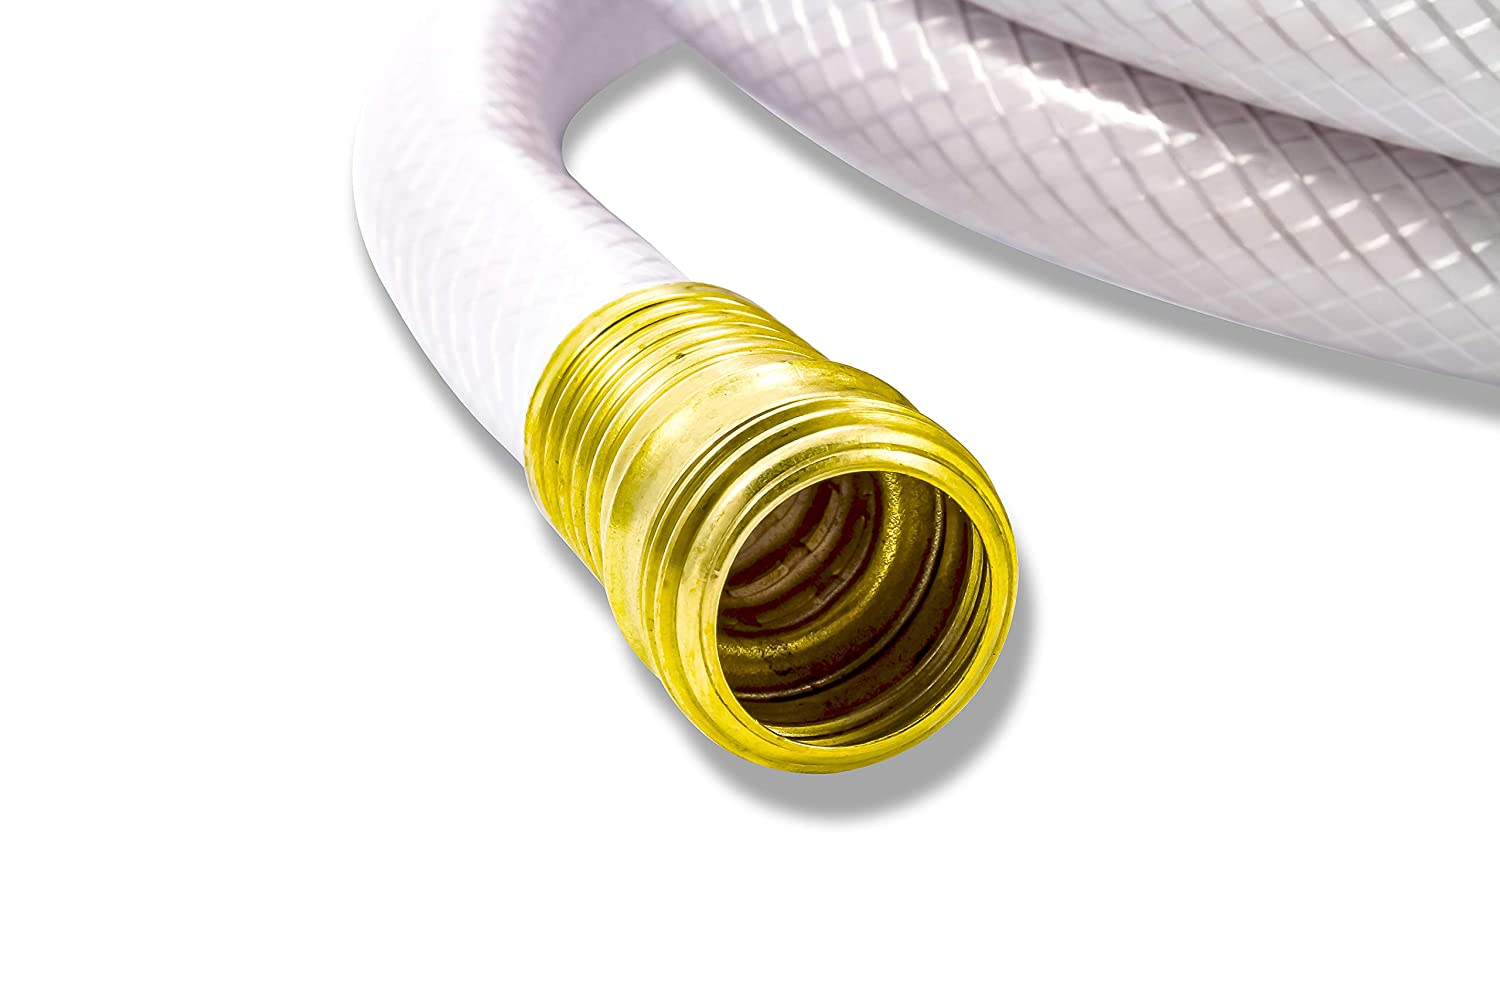 Reinforced for Maximum Kink Resistance 1//2Inner Diameter Camco 10ft TastePURE Drinking Water Hose Lead and BPA Free 22743